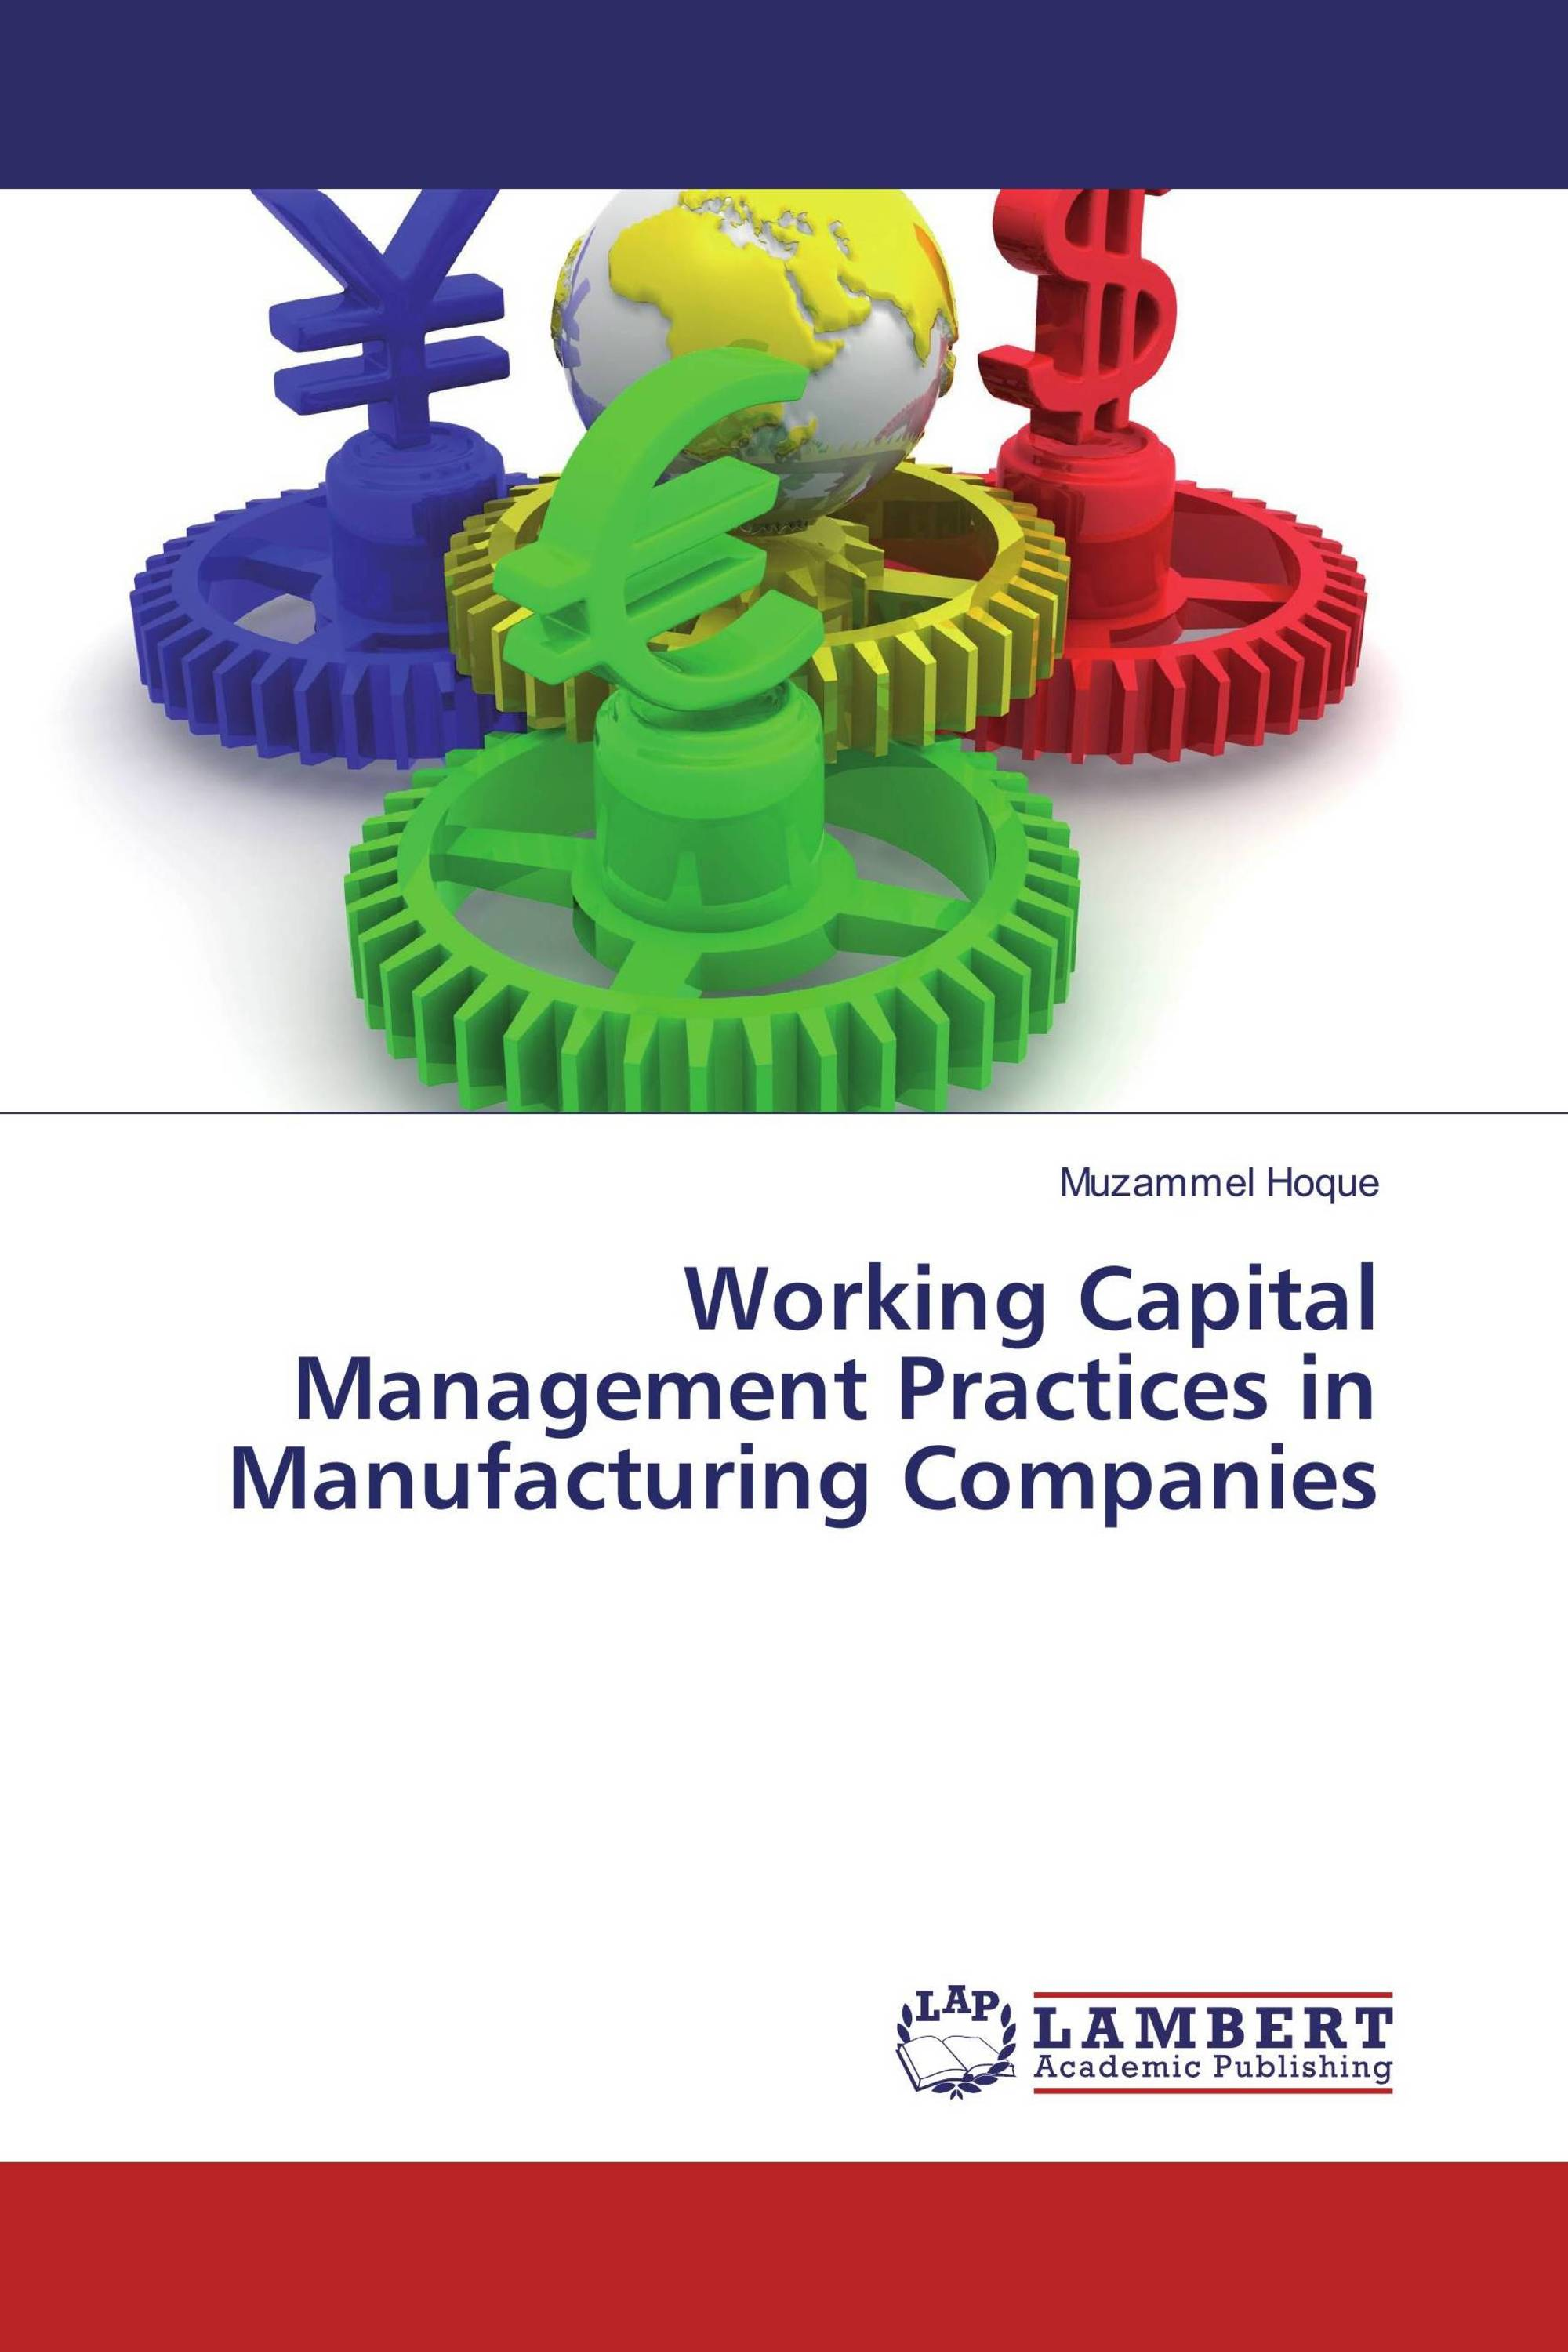 thesis working capital management